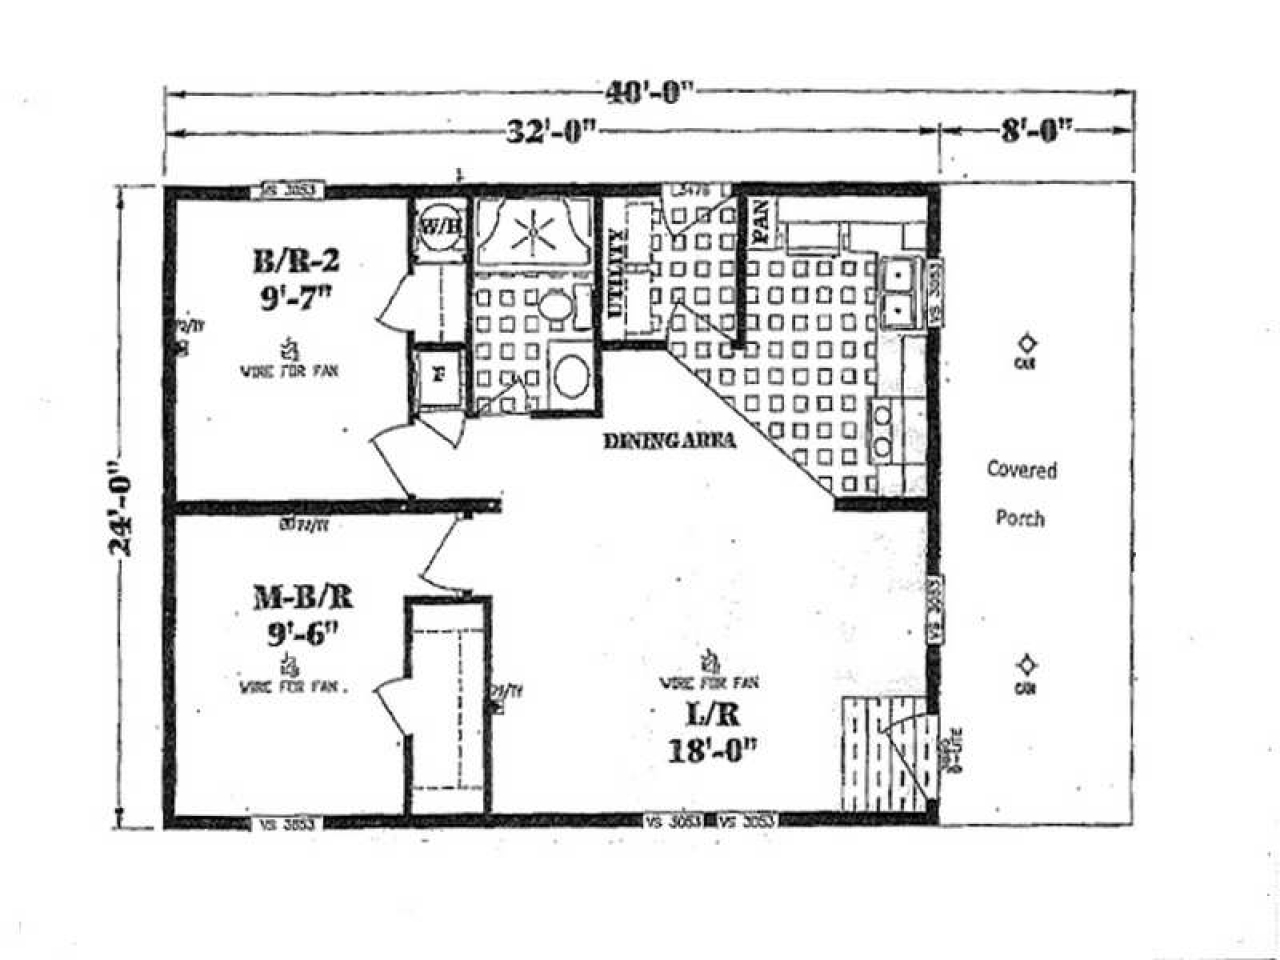 Luxury double wide mobile homes small double wide mobile for 2 bedroom double wide floor plans